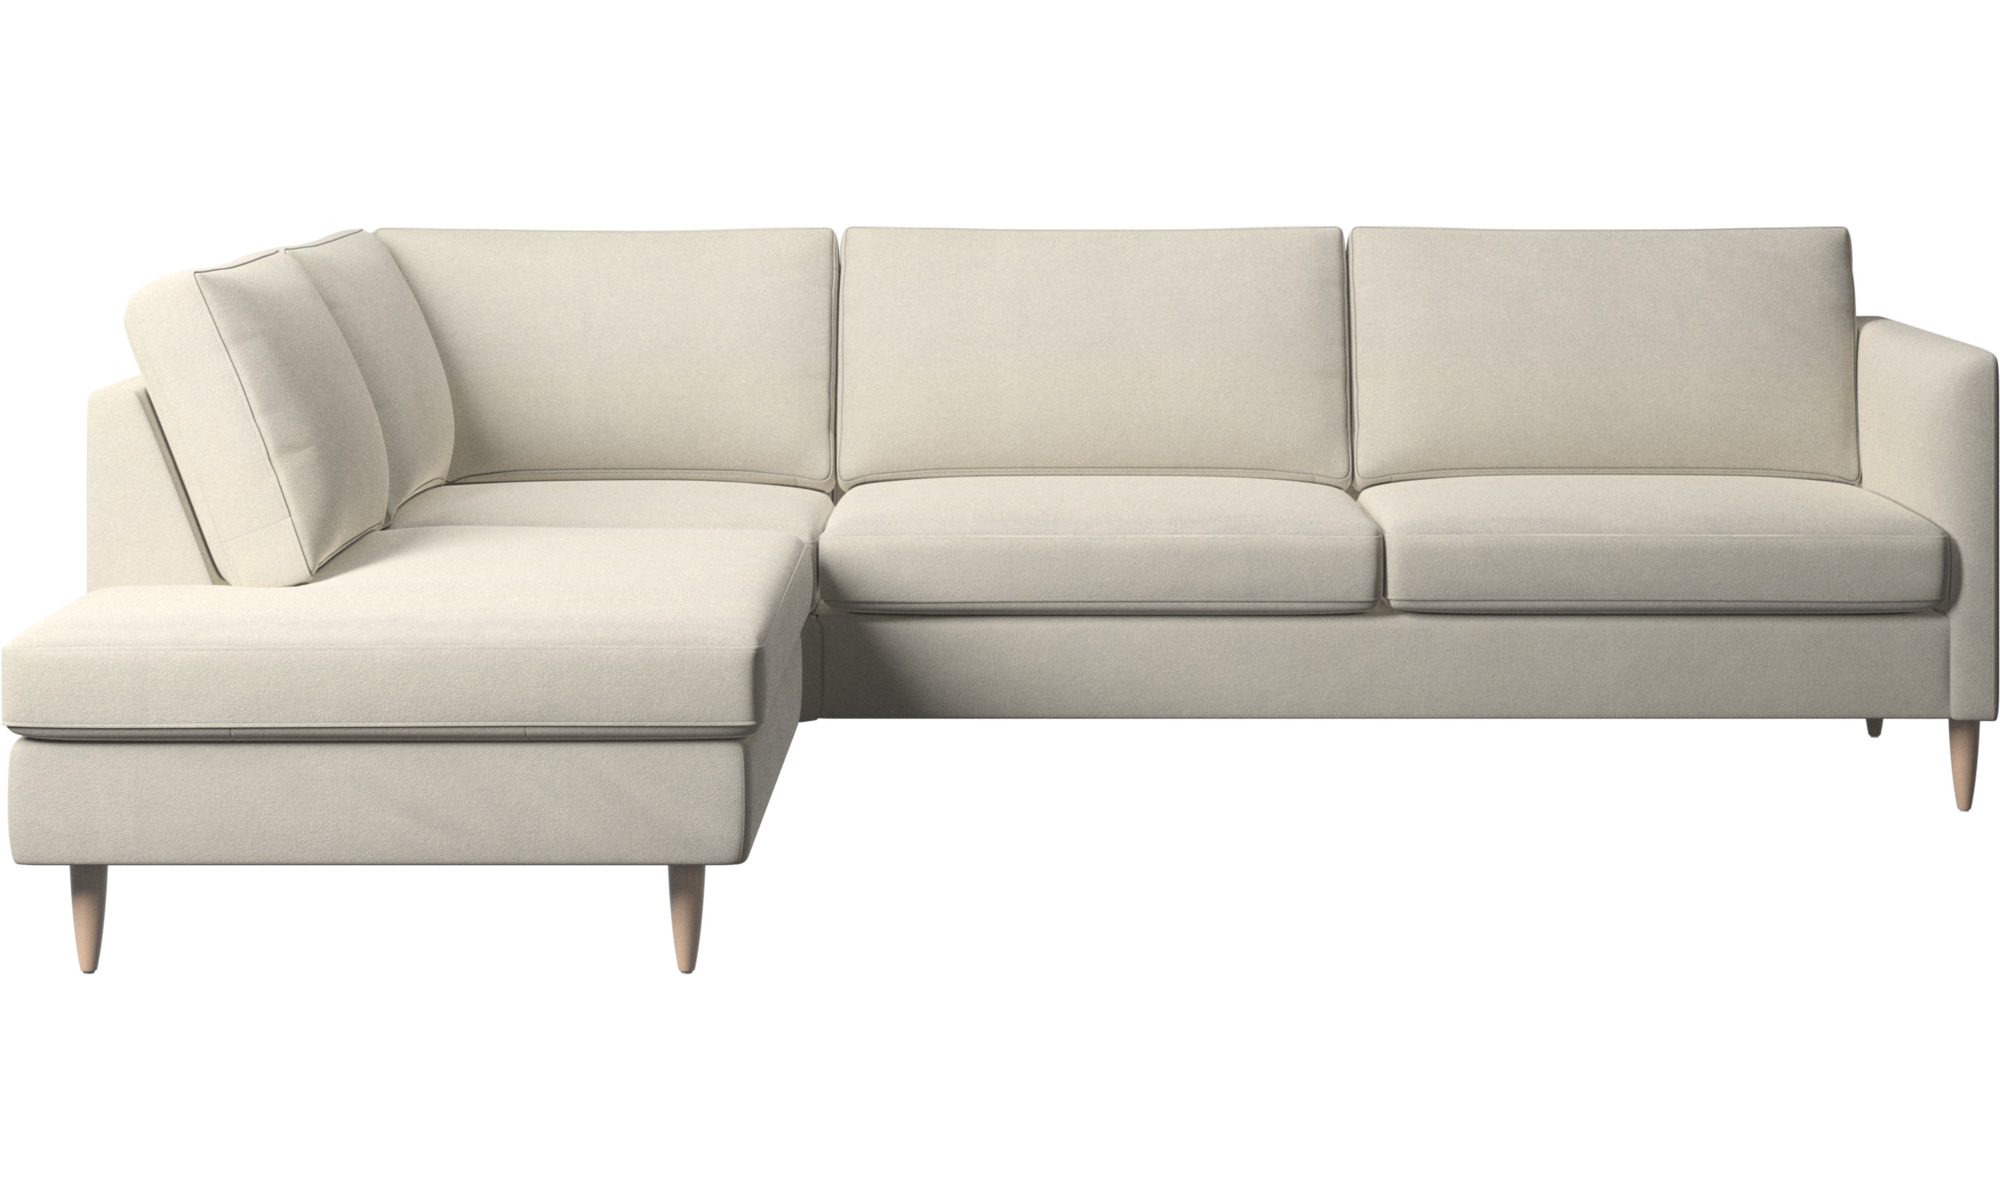 Corner Sofas Indivi Corner Sofa With Lounging Unit Boconcept